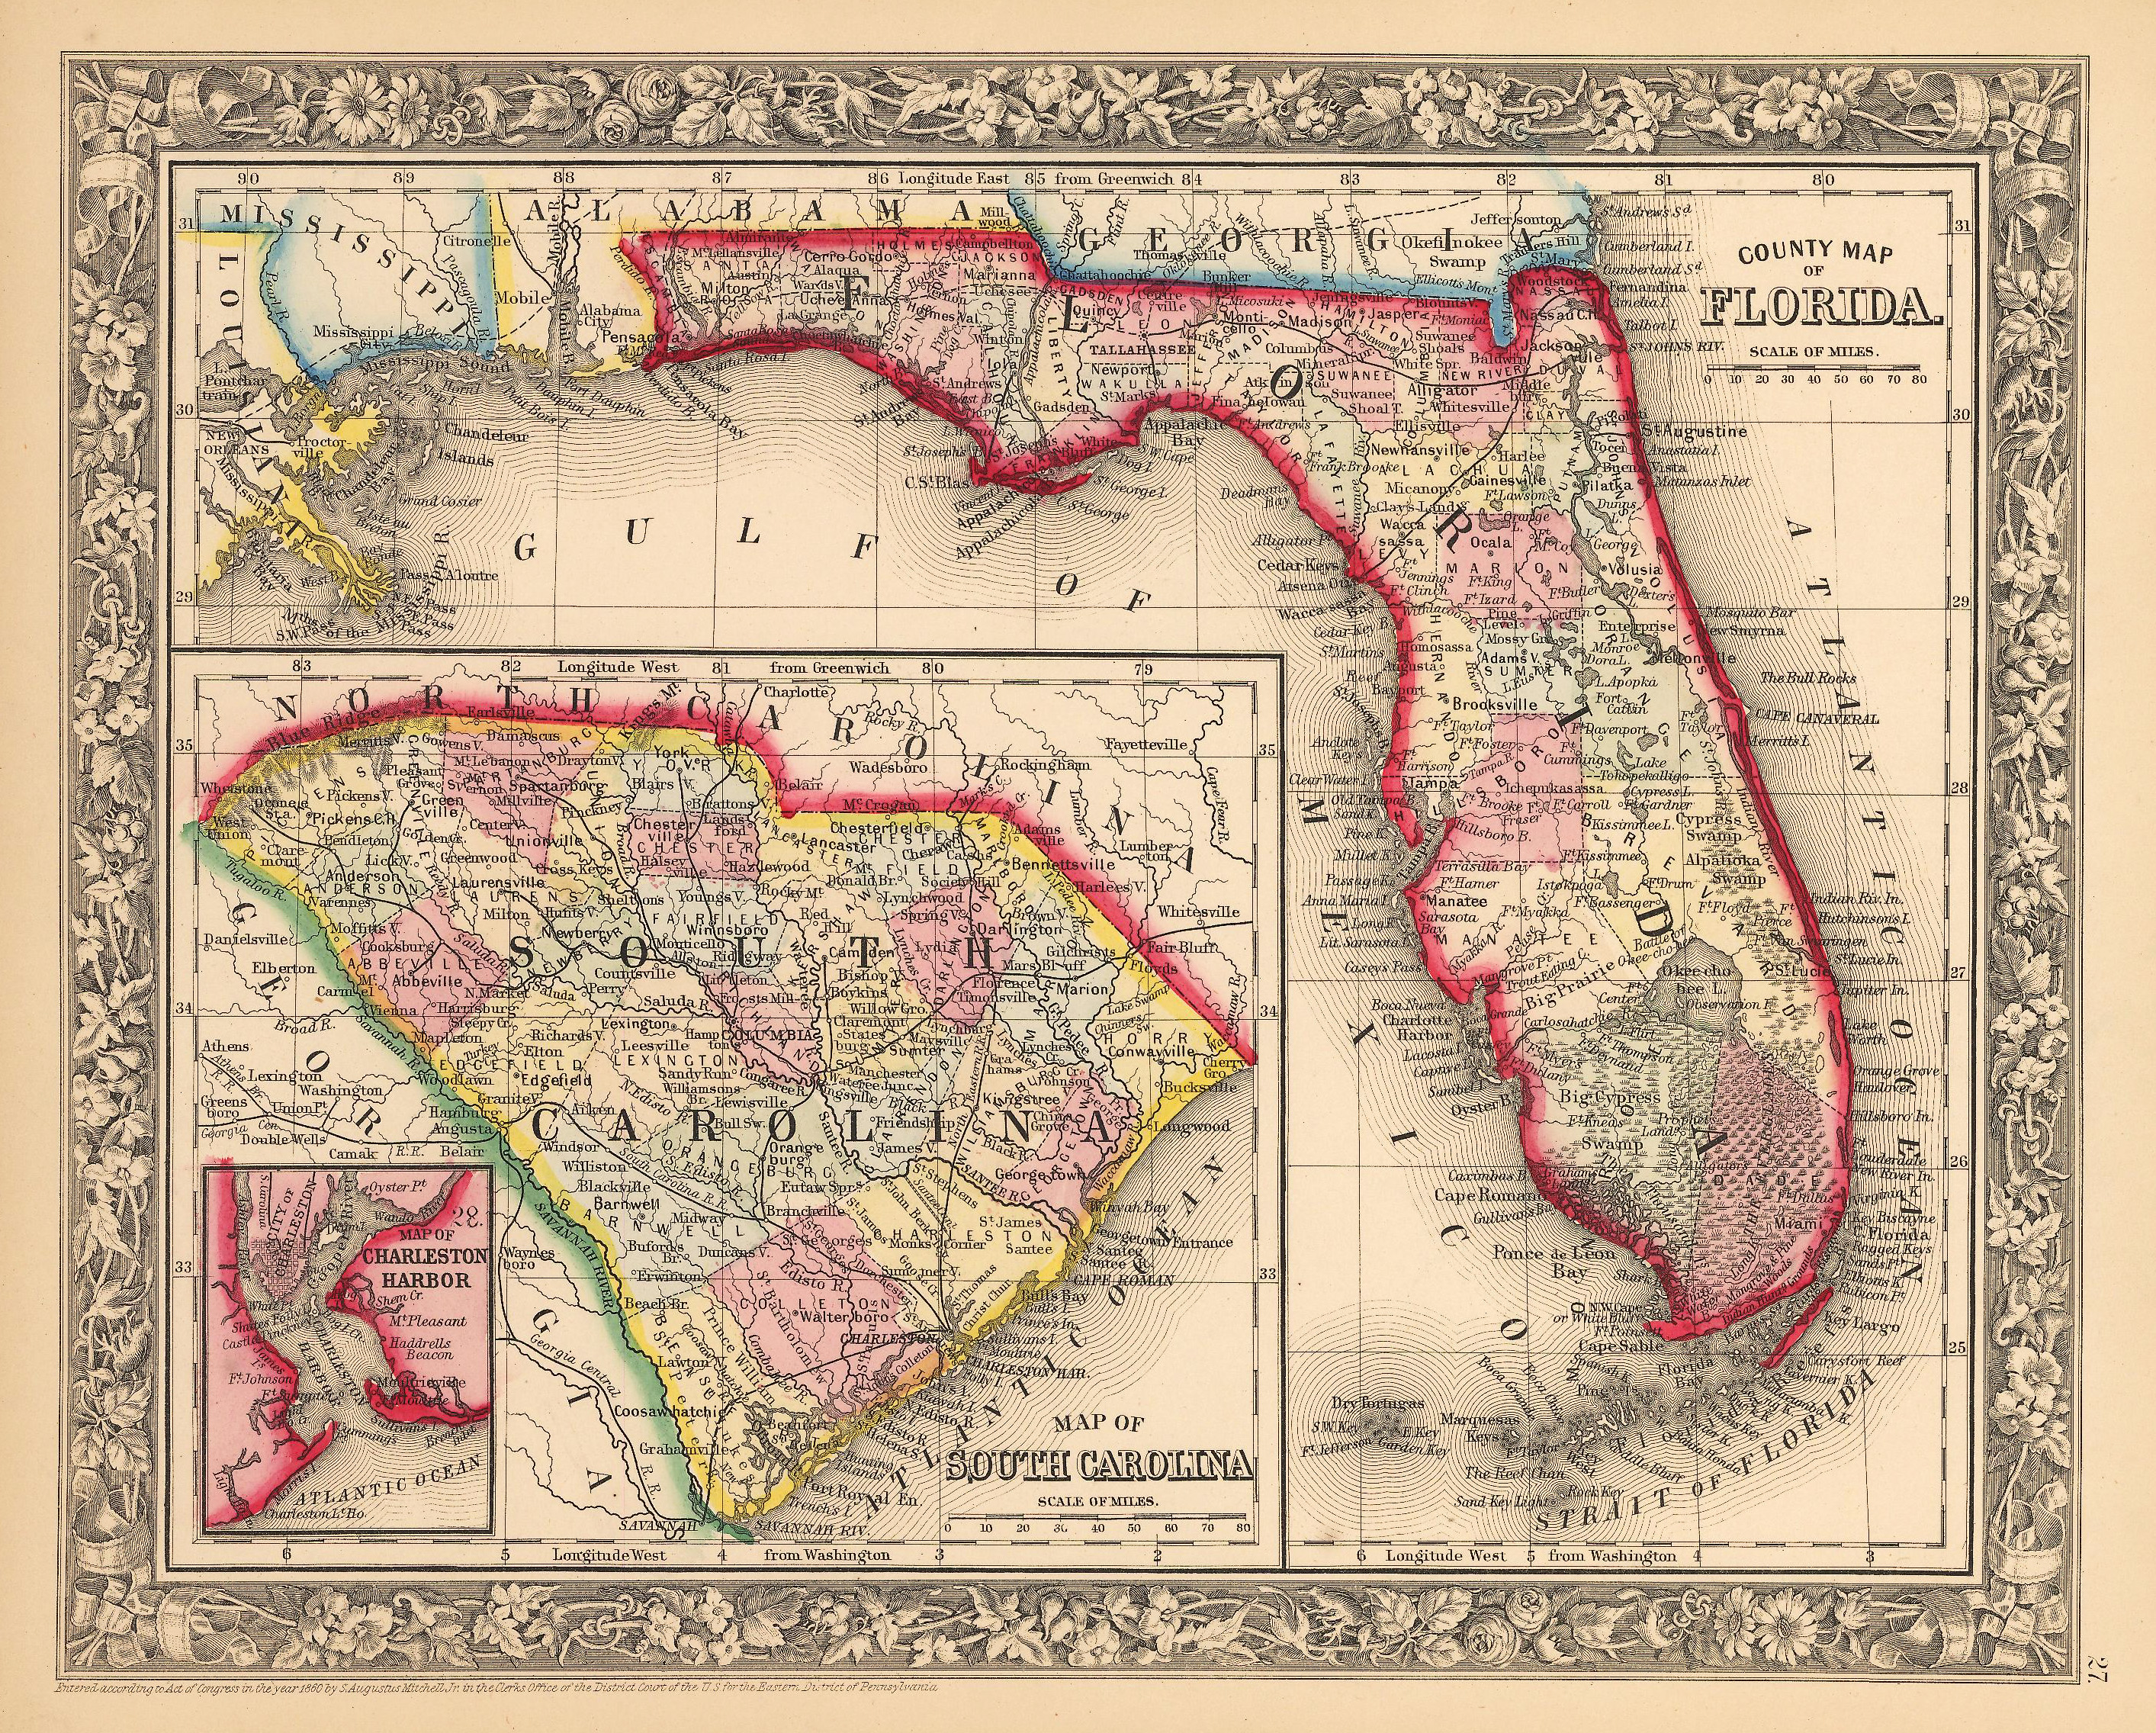 Florida On A Map.Antique Map Of Florida And South Carolina By Mitchell 1862